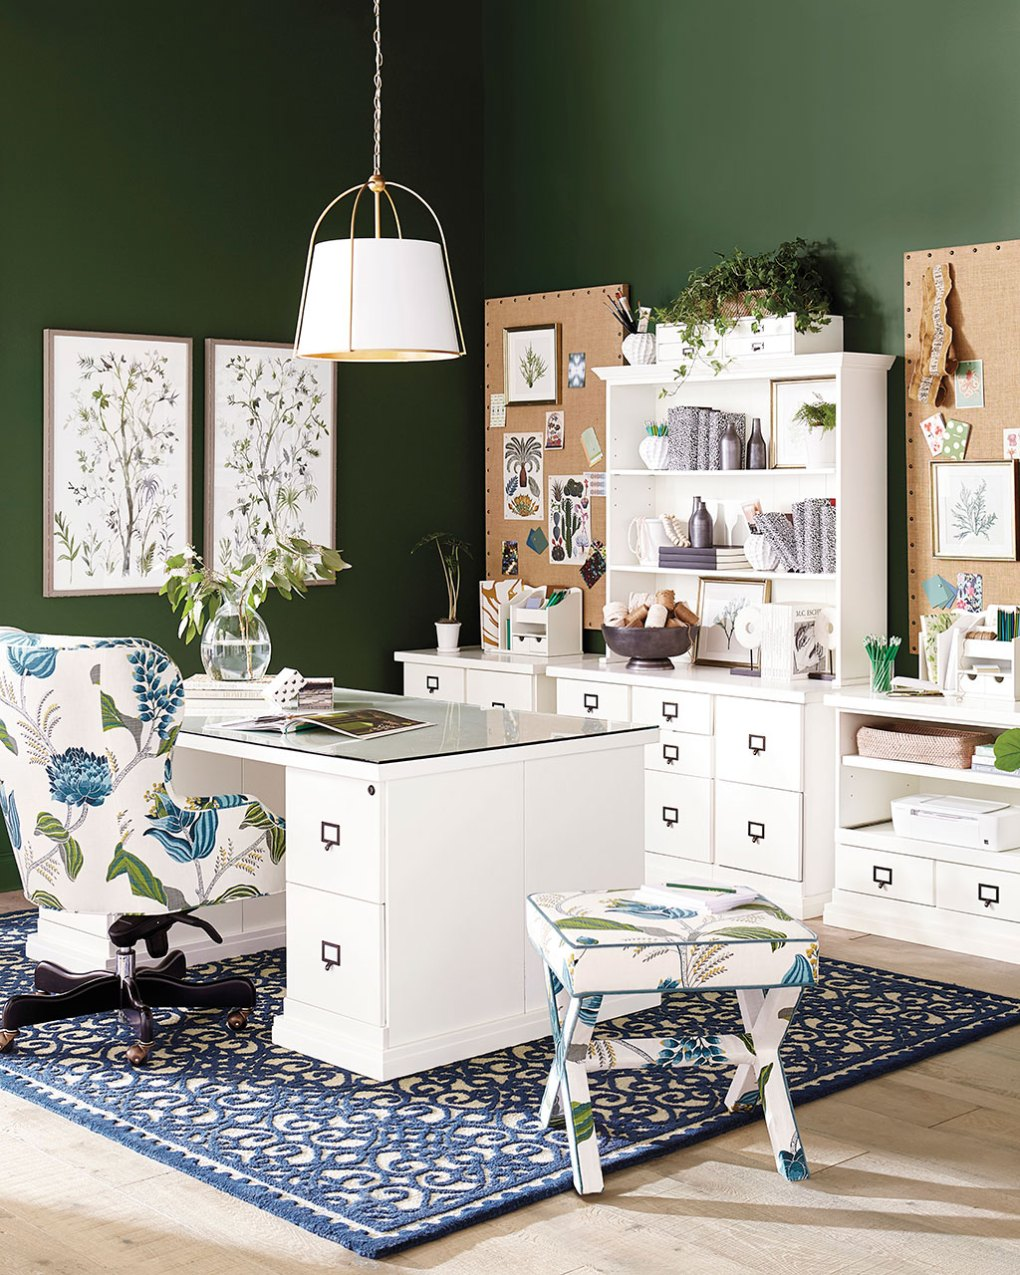 Green and blue themed home office by Ballard Designs